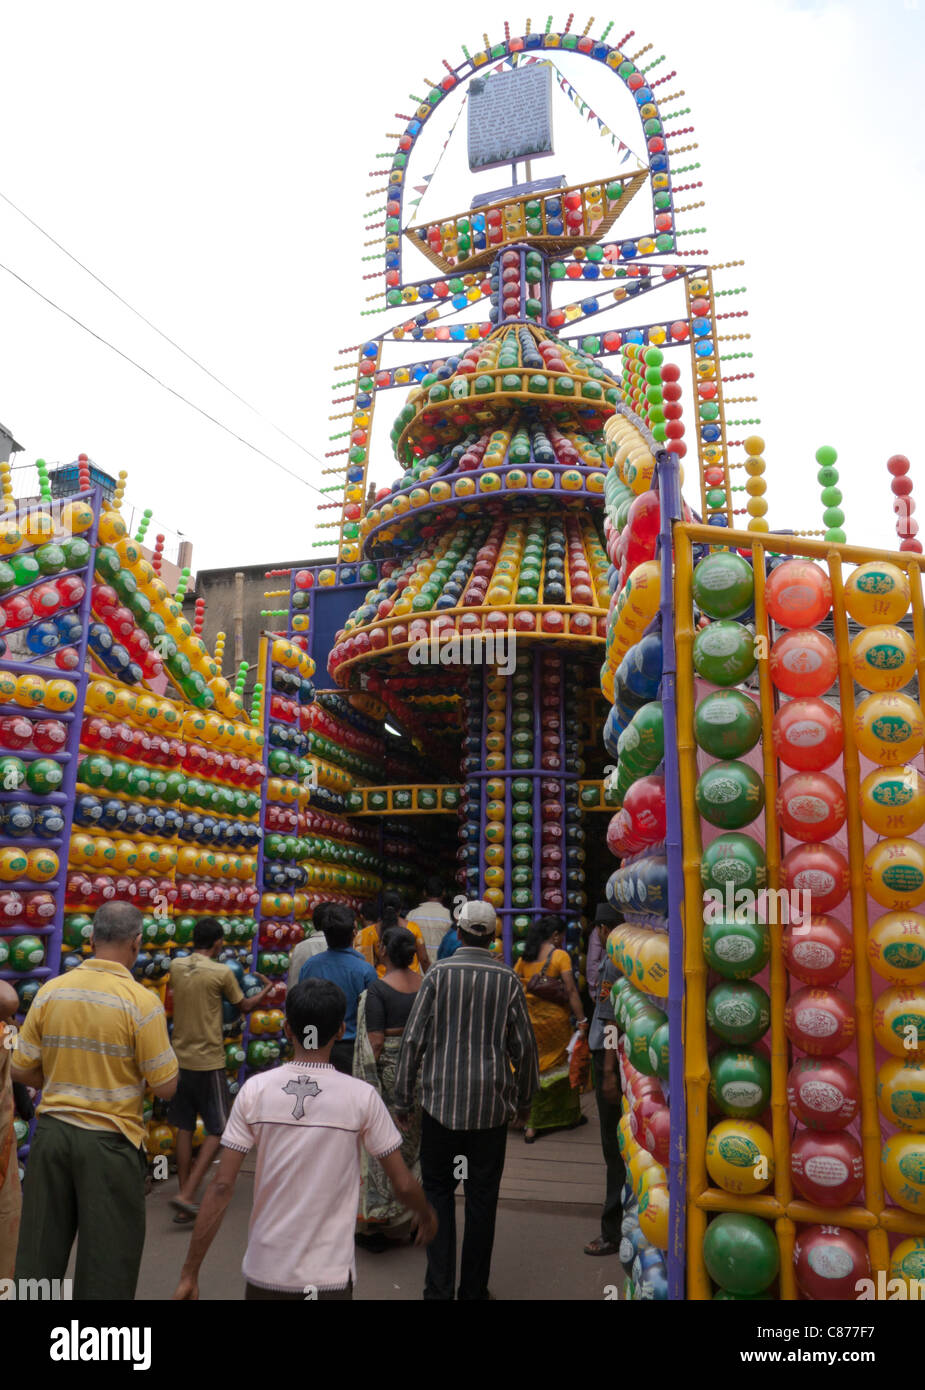 Durga puja decoration kolkata calcutta stock photos durga puja devotees at karbagan durga puja pandal made of coloured plastic balls in ultadanga altavistaventures Choice Image